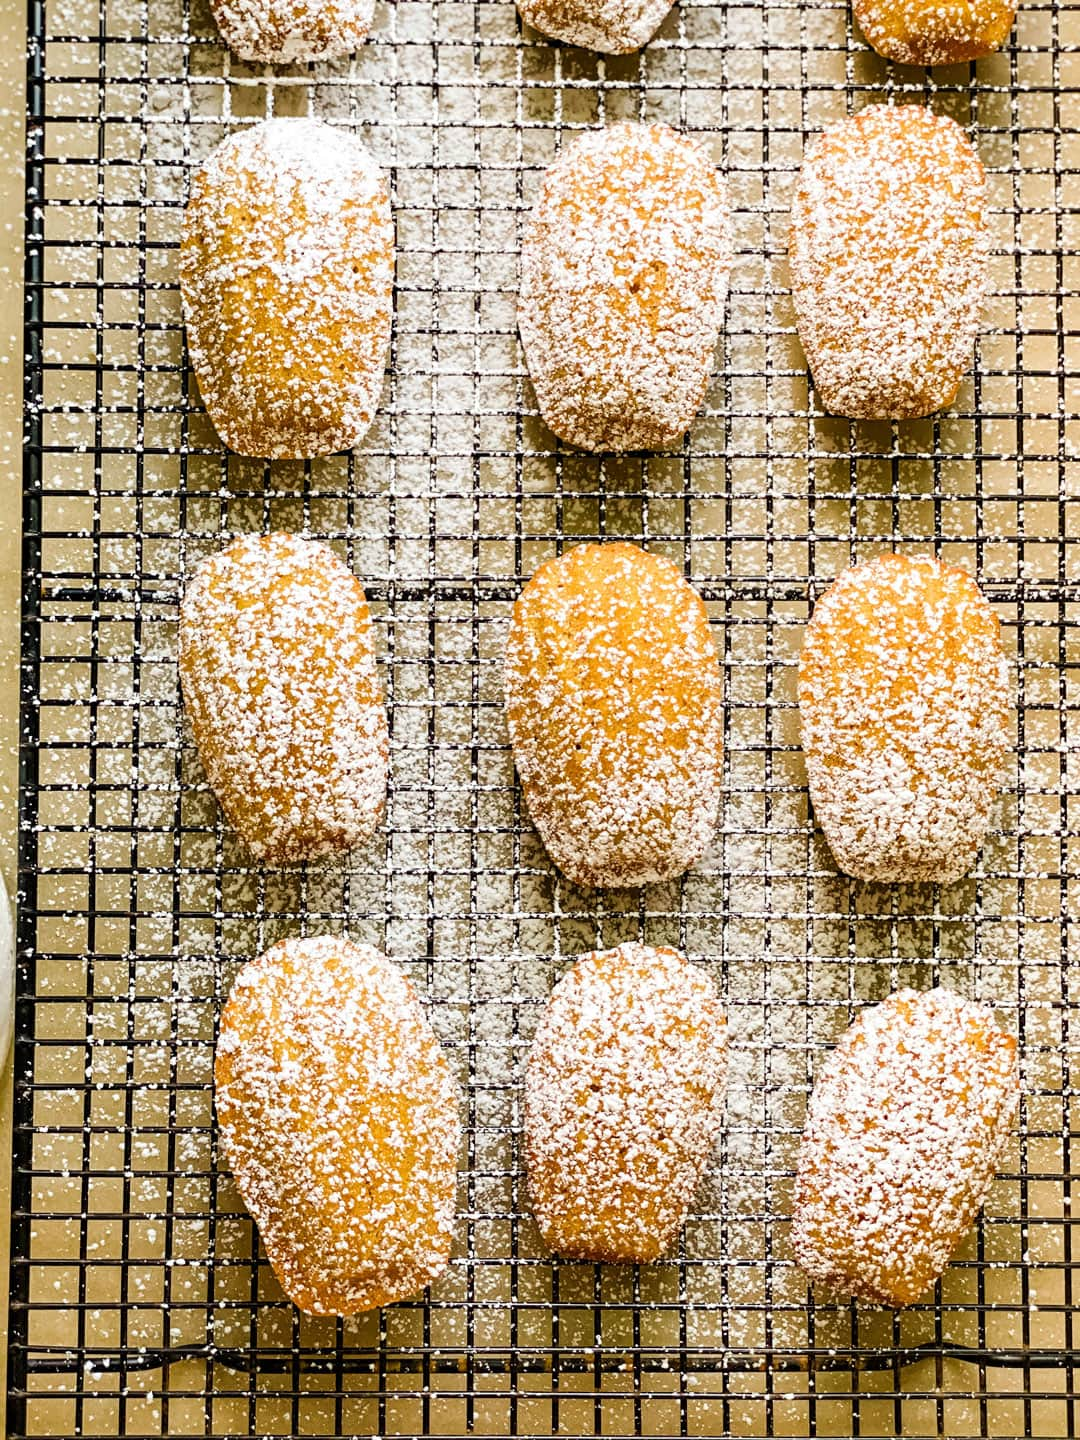 Lifestyle Blogger Annie Diamond shares her recipe for small batch pumpkin Madeleines because Madeleines are best eaten right out of the oven.